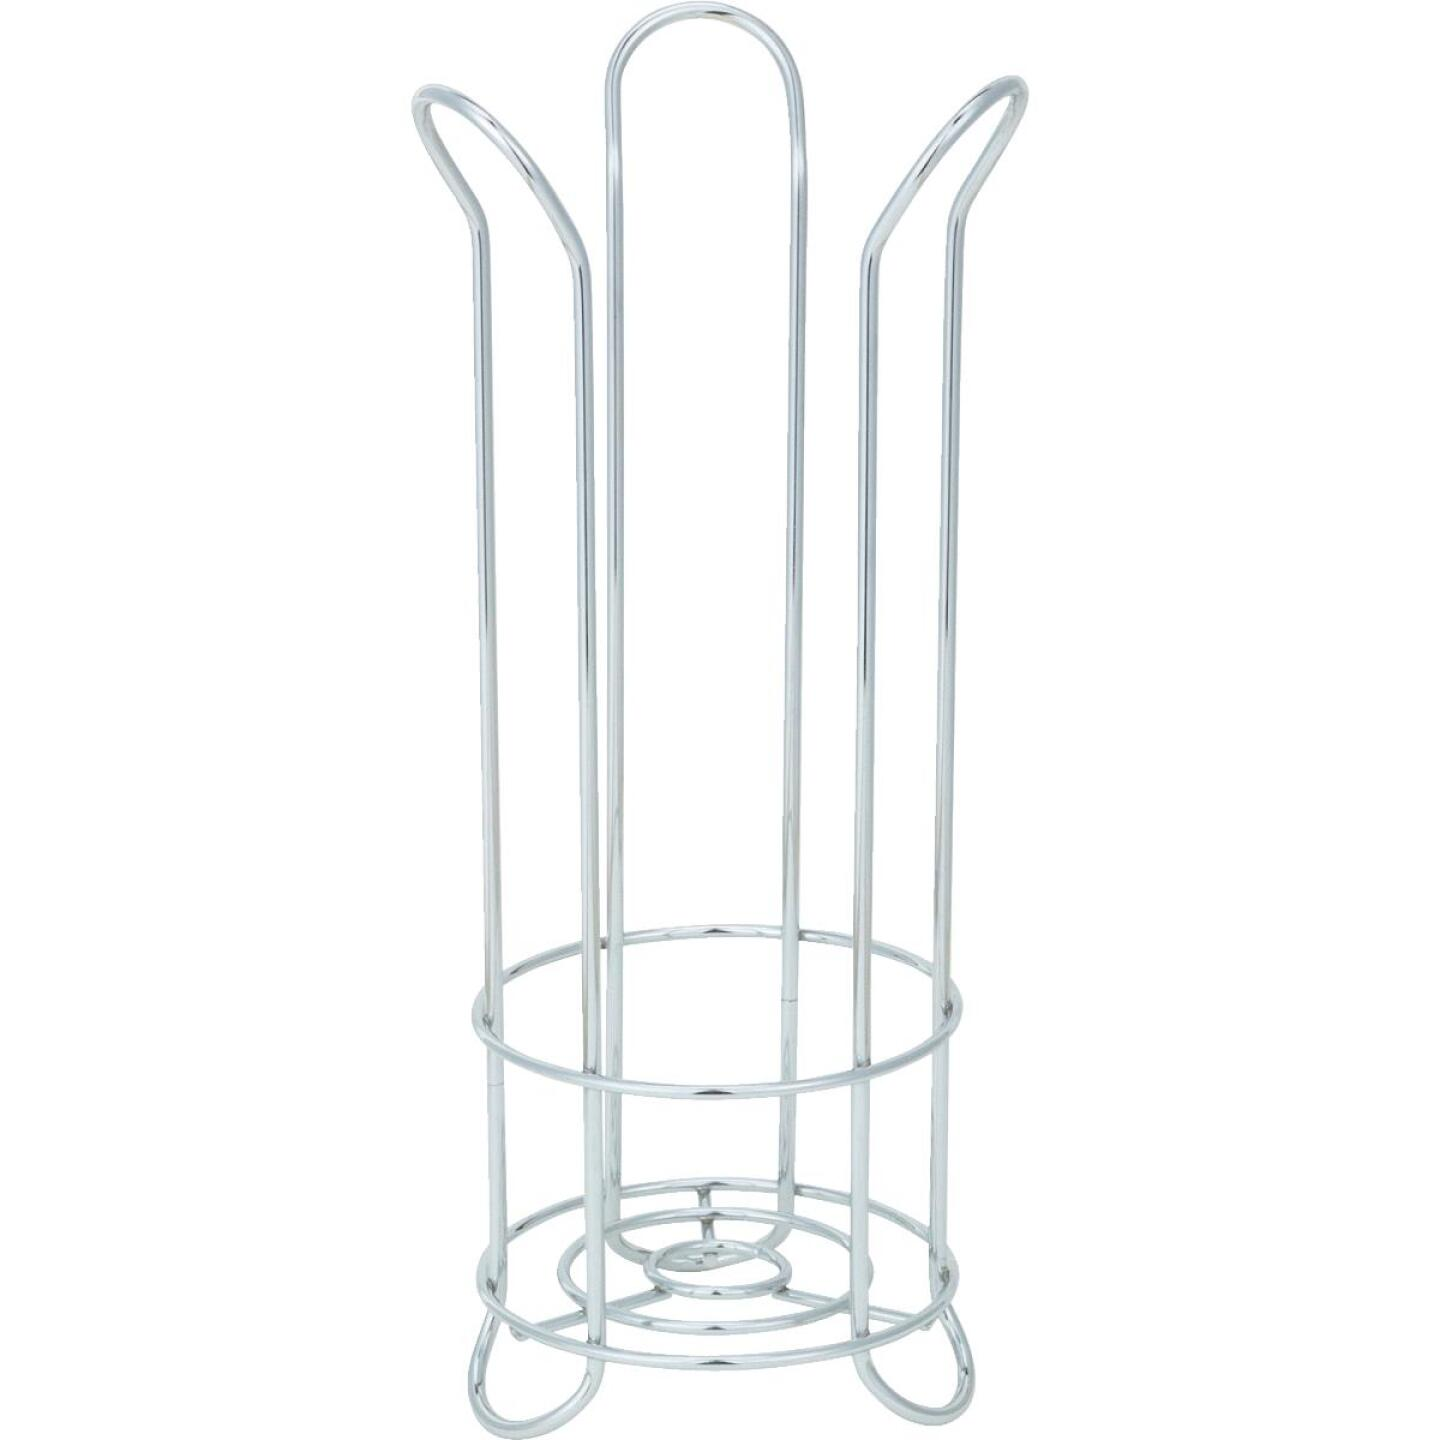 InterDesign Forma Chrome Tulip Freestanding Toilet Paper Holder Image 3